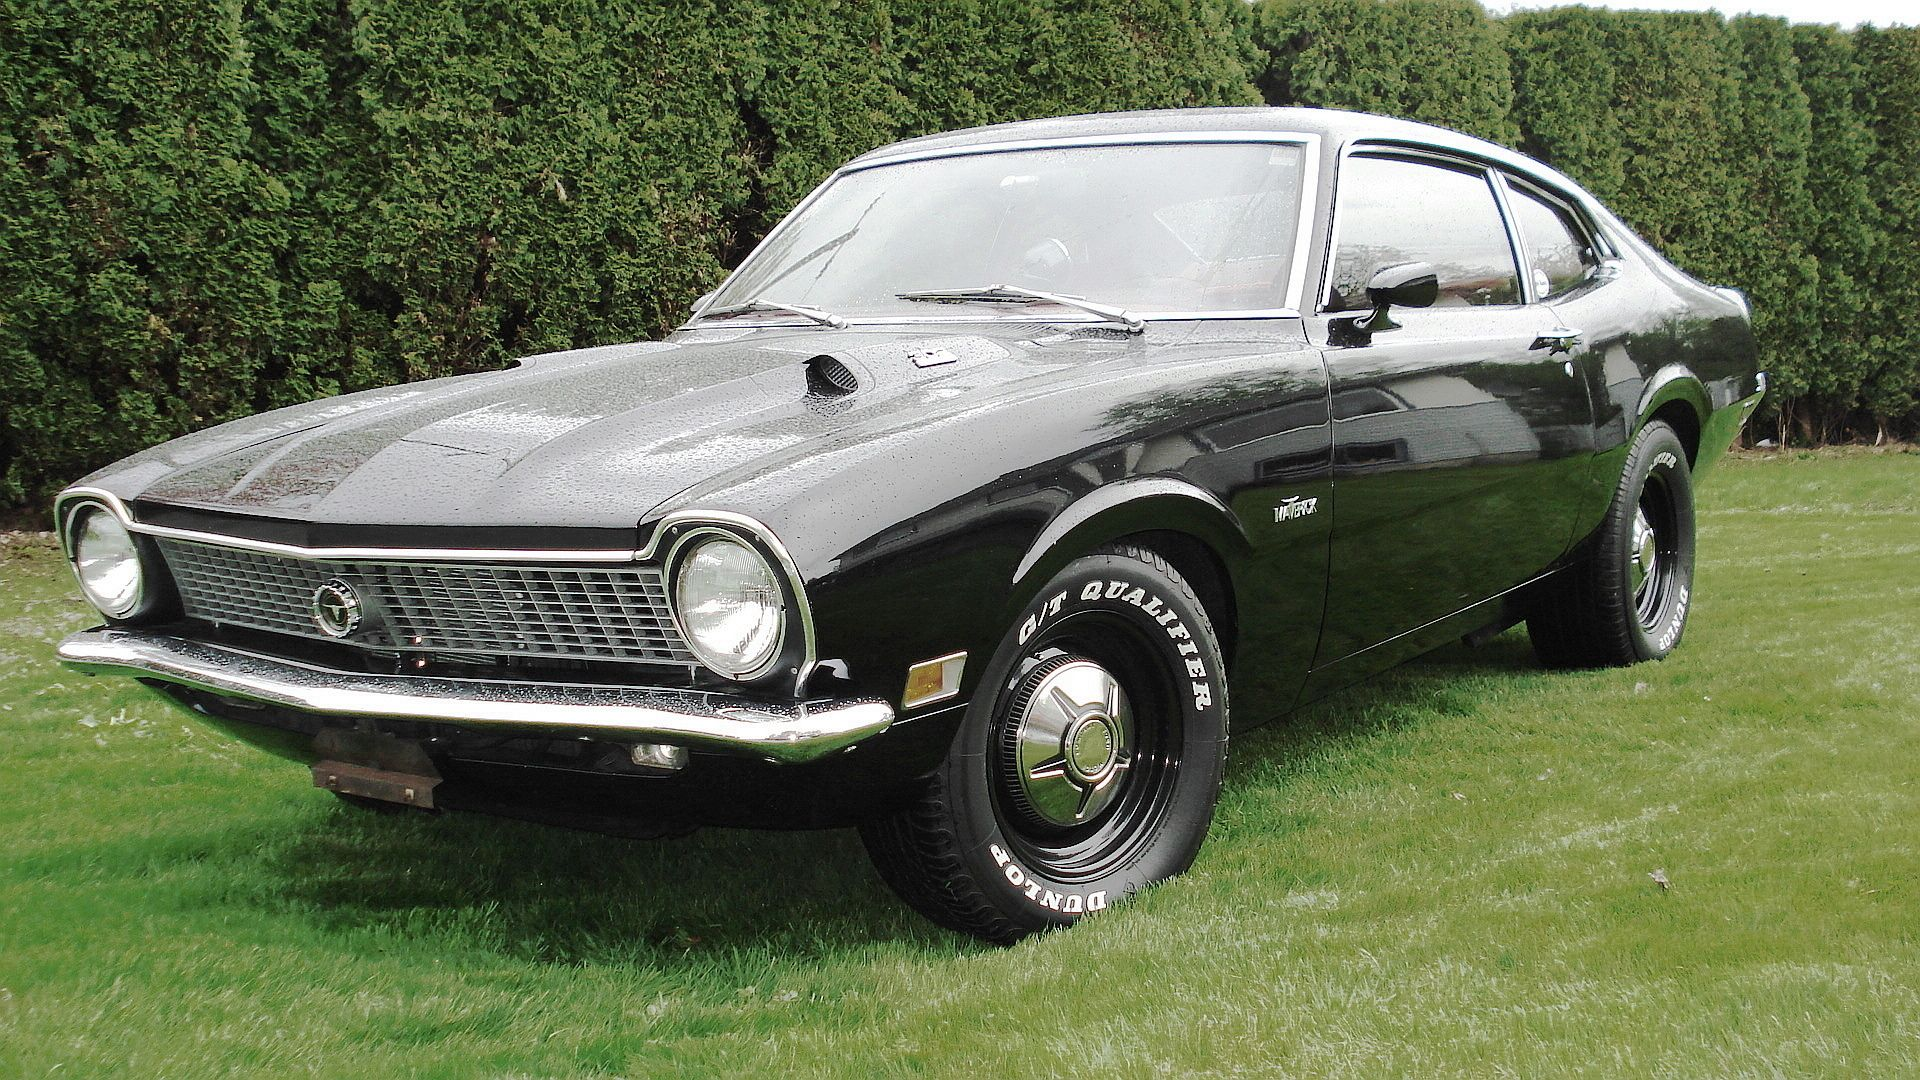 My 1970 Maverick Today 2011 With Images Ford Maverick Old